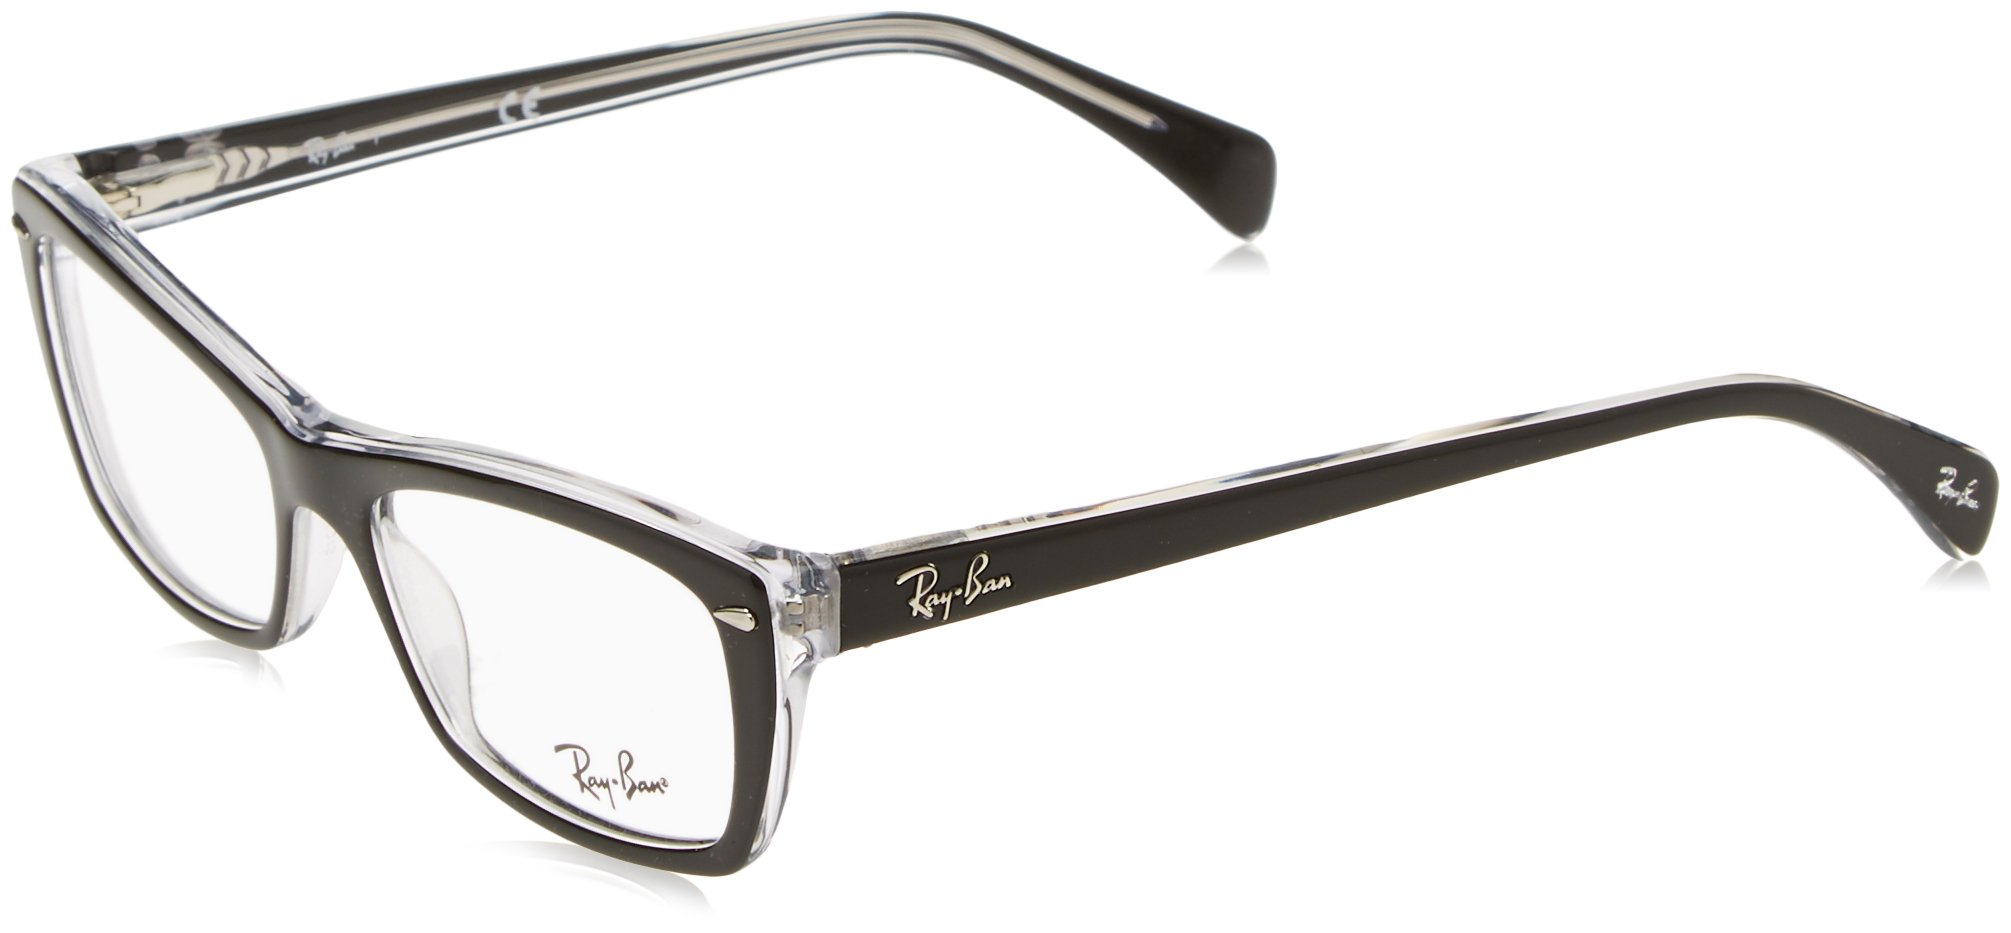 Ray-Ban Women's Rx5255 Square Eyeglasses,Top Black & Transparent,51 mm by Ray-Ban